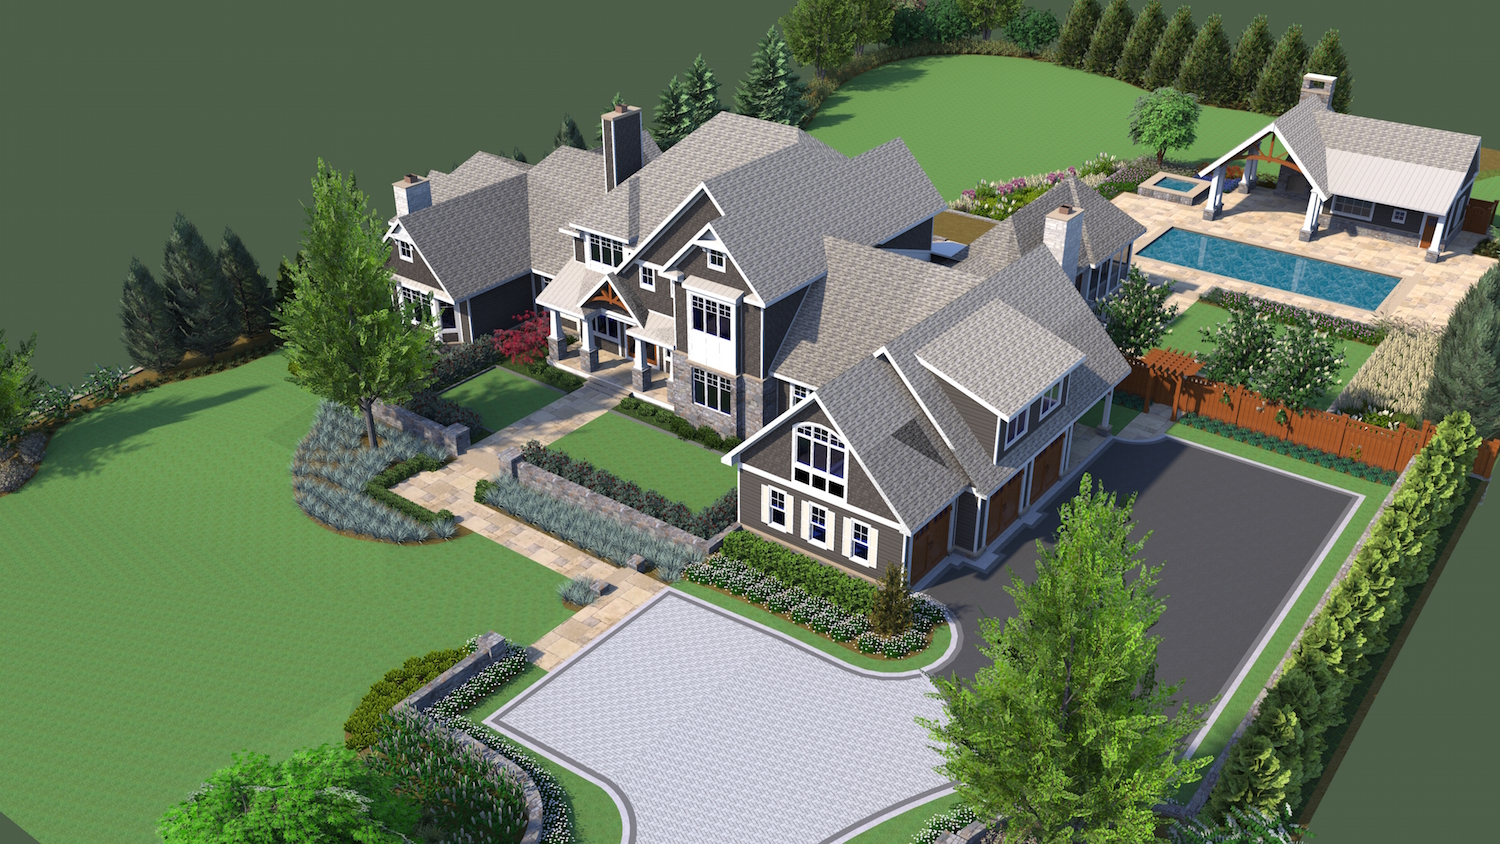 Landscape Design And Custom Home Design Rendering